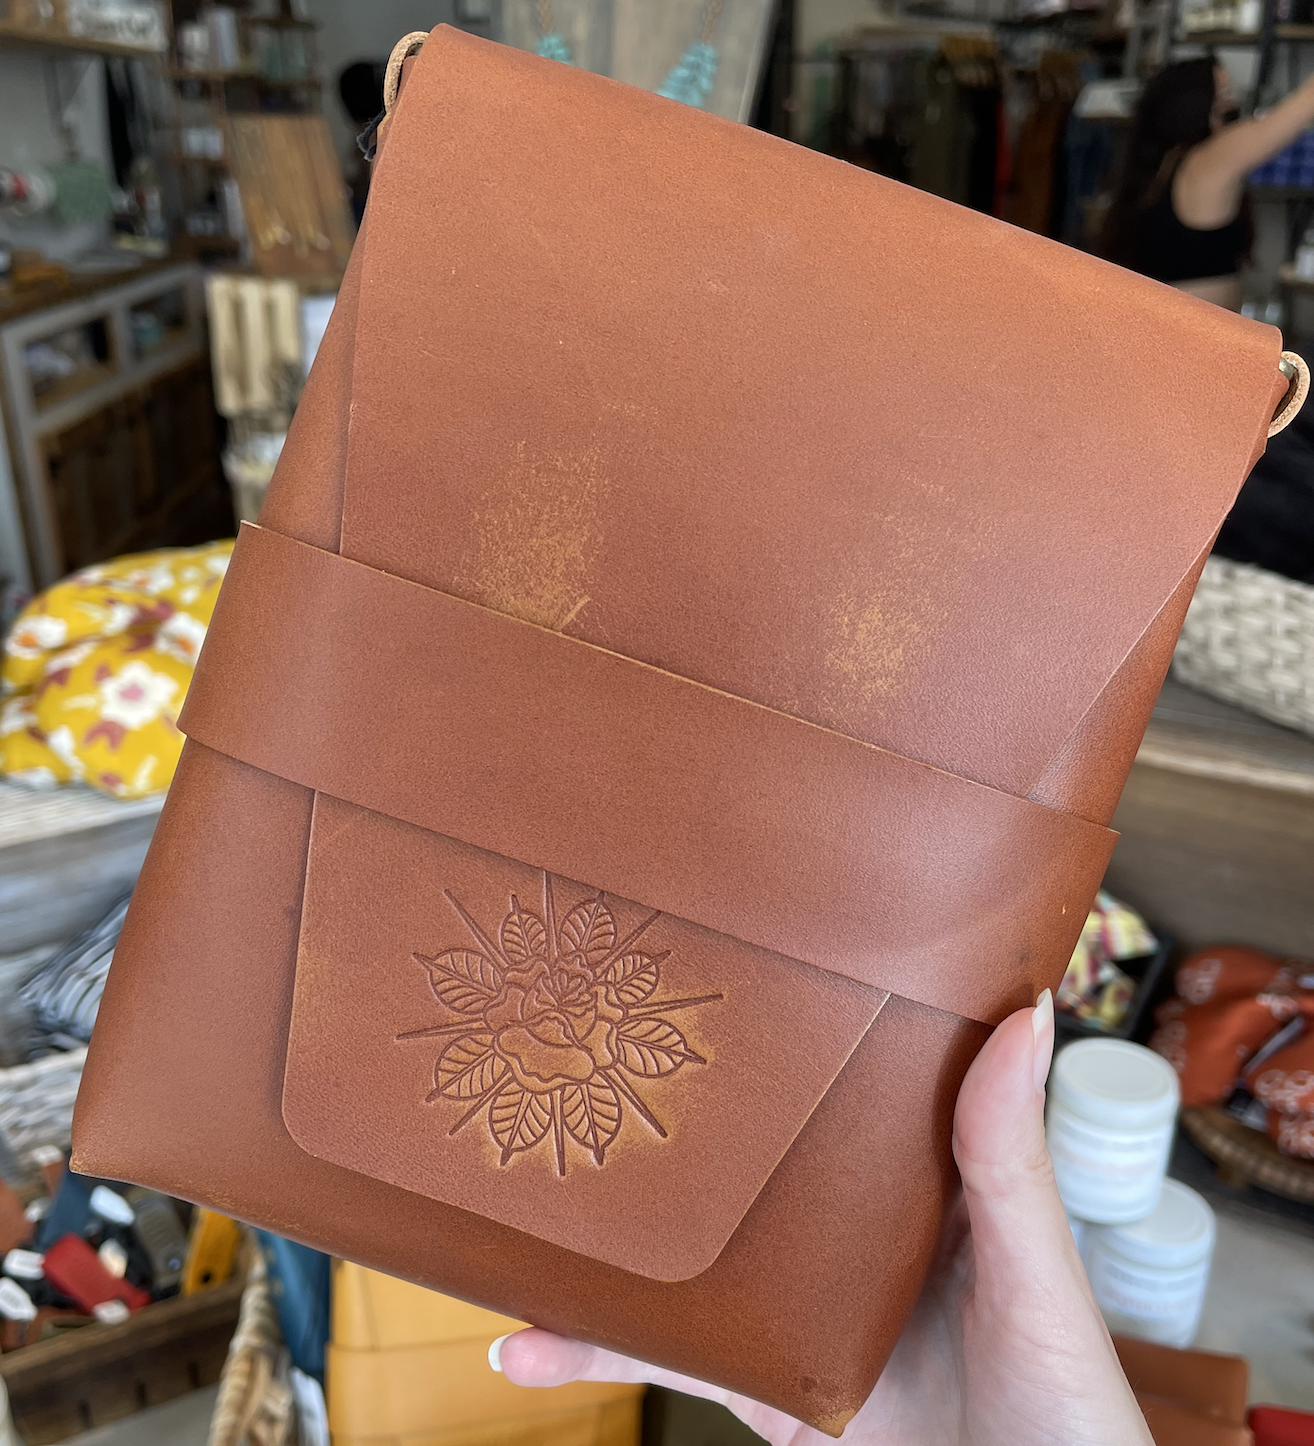 Cruger Co Leather Crossbody - Brown w/ Rose